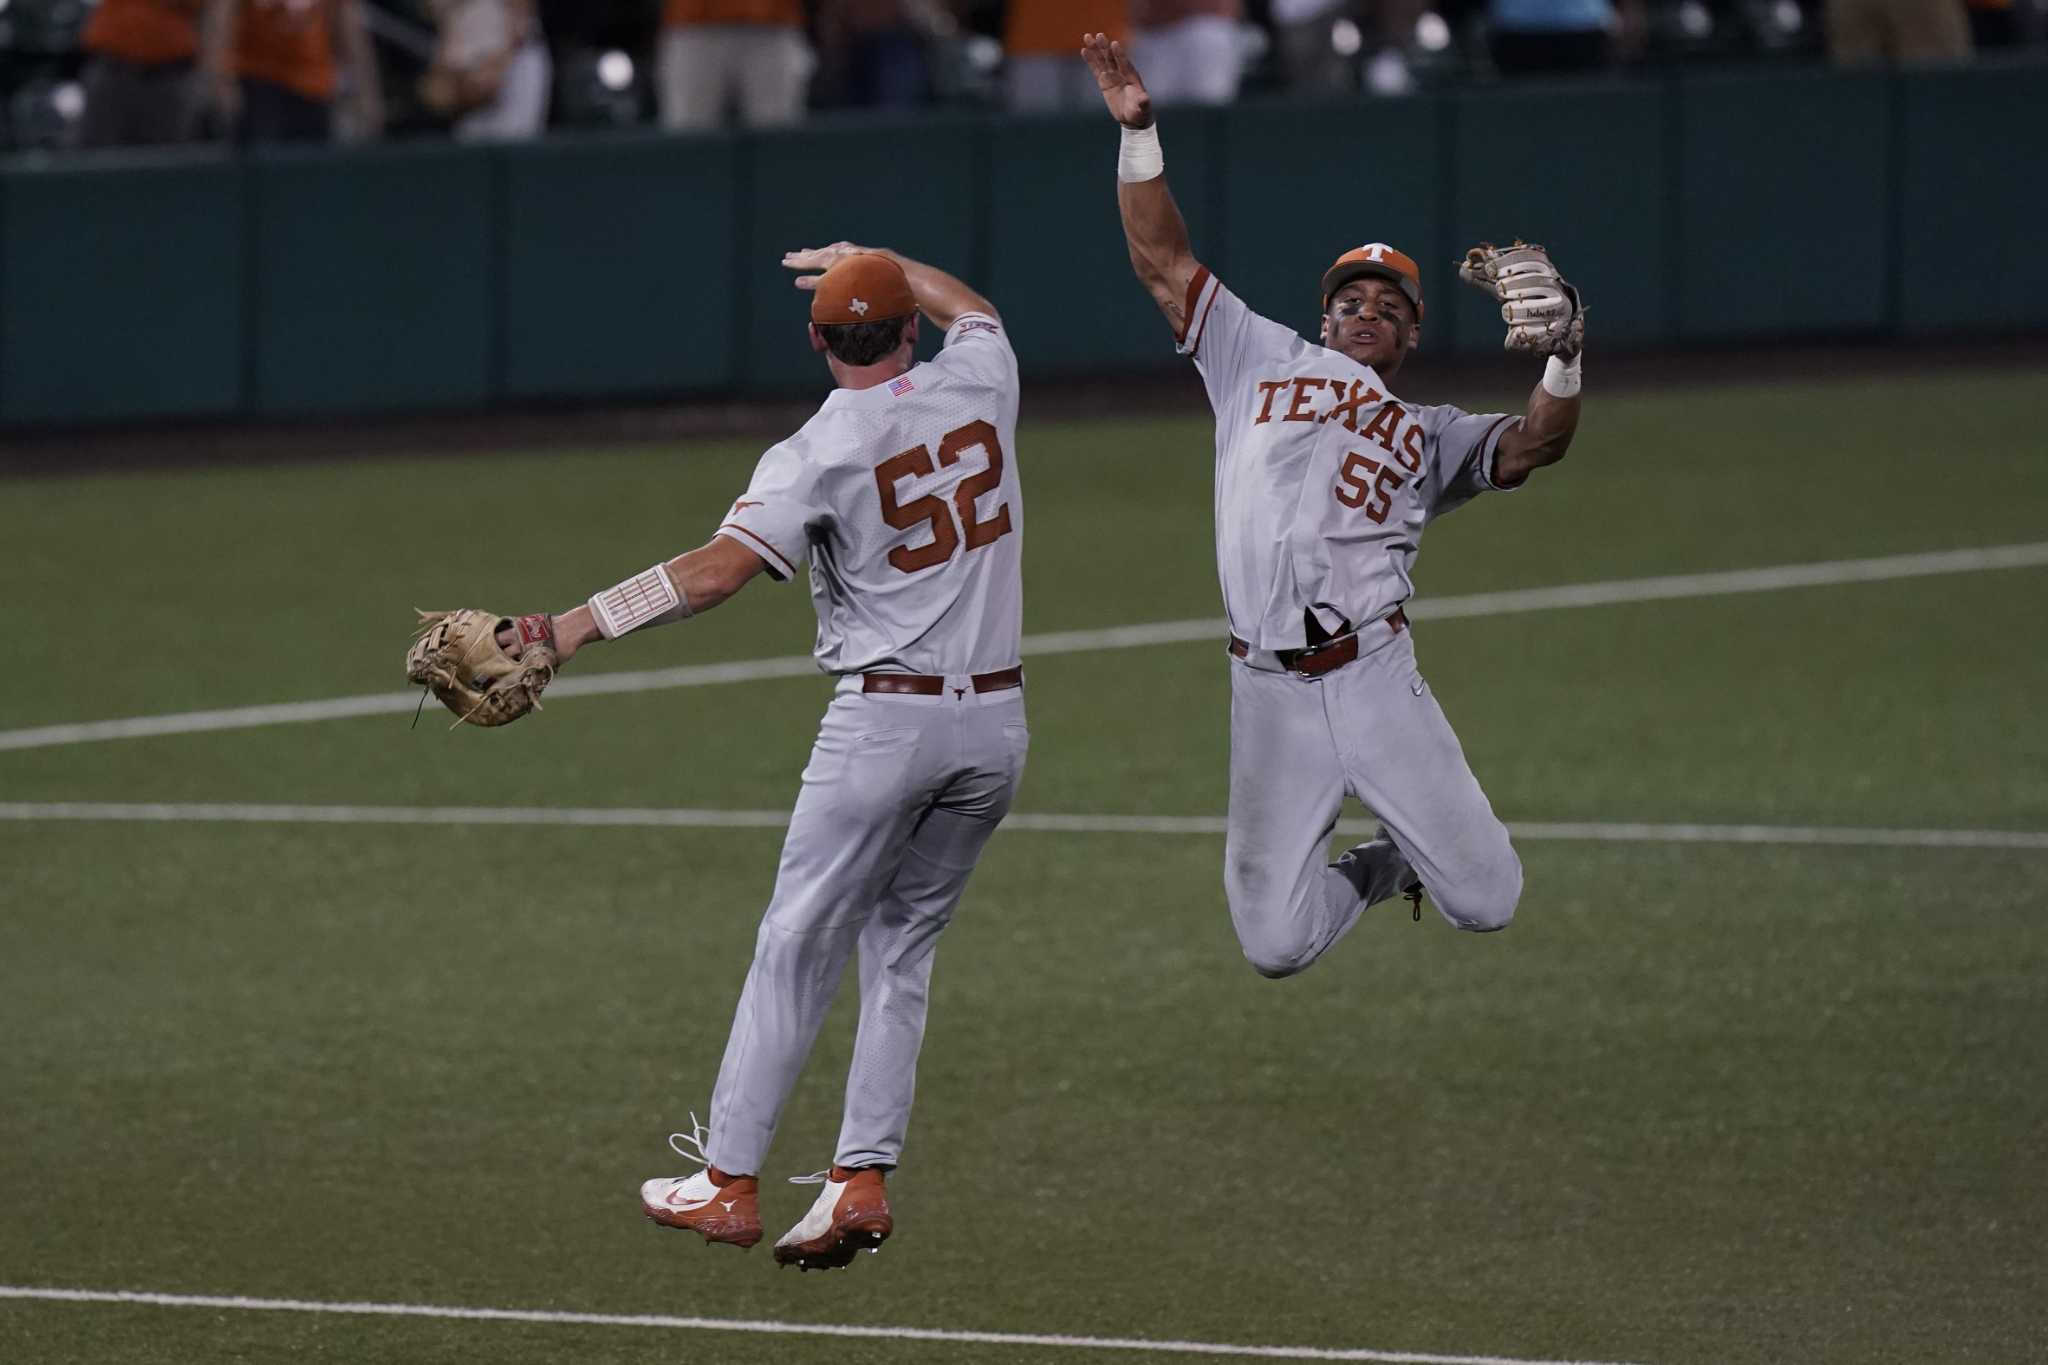 Texas gets ready for the big stage in Omaha